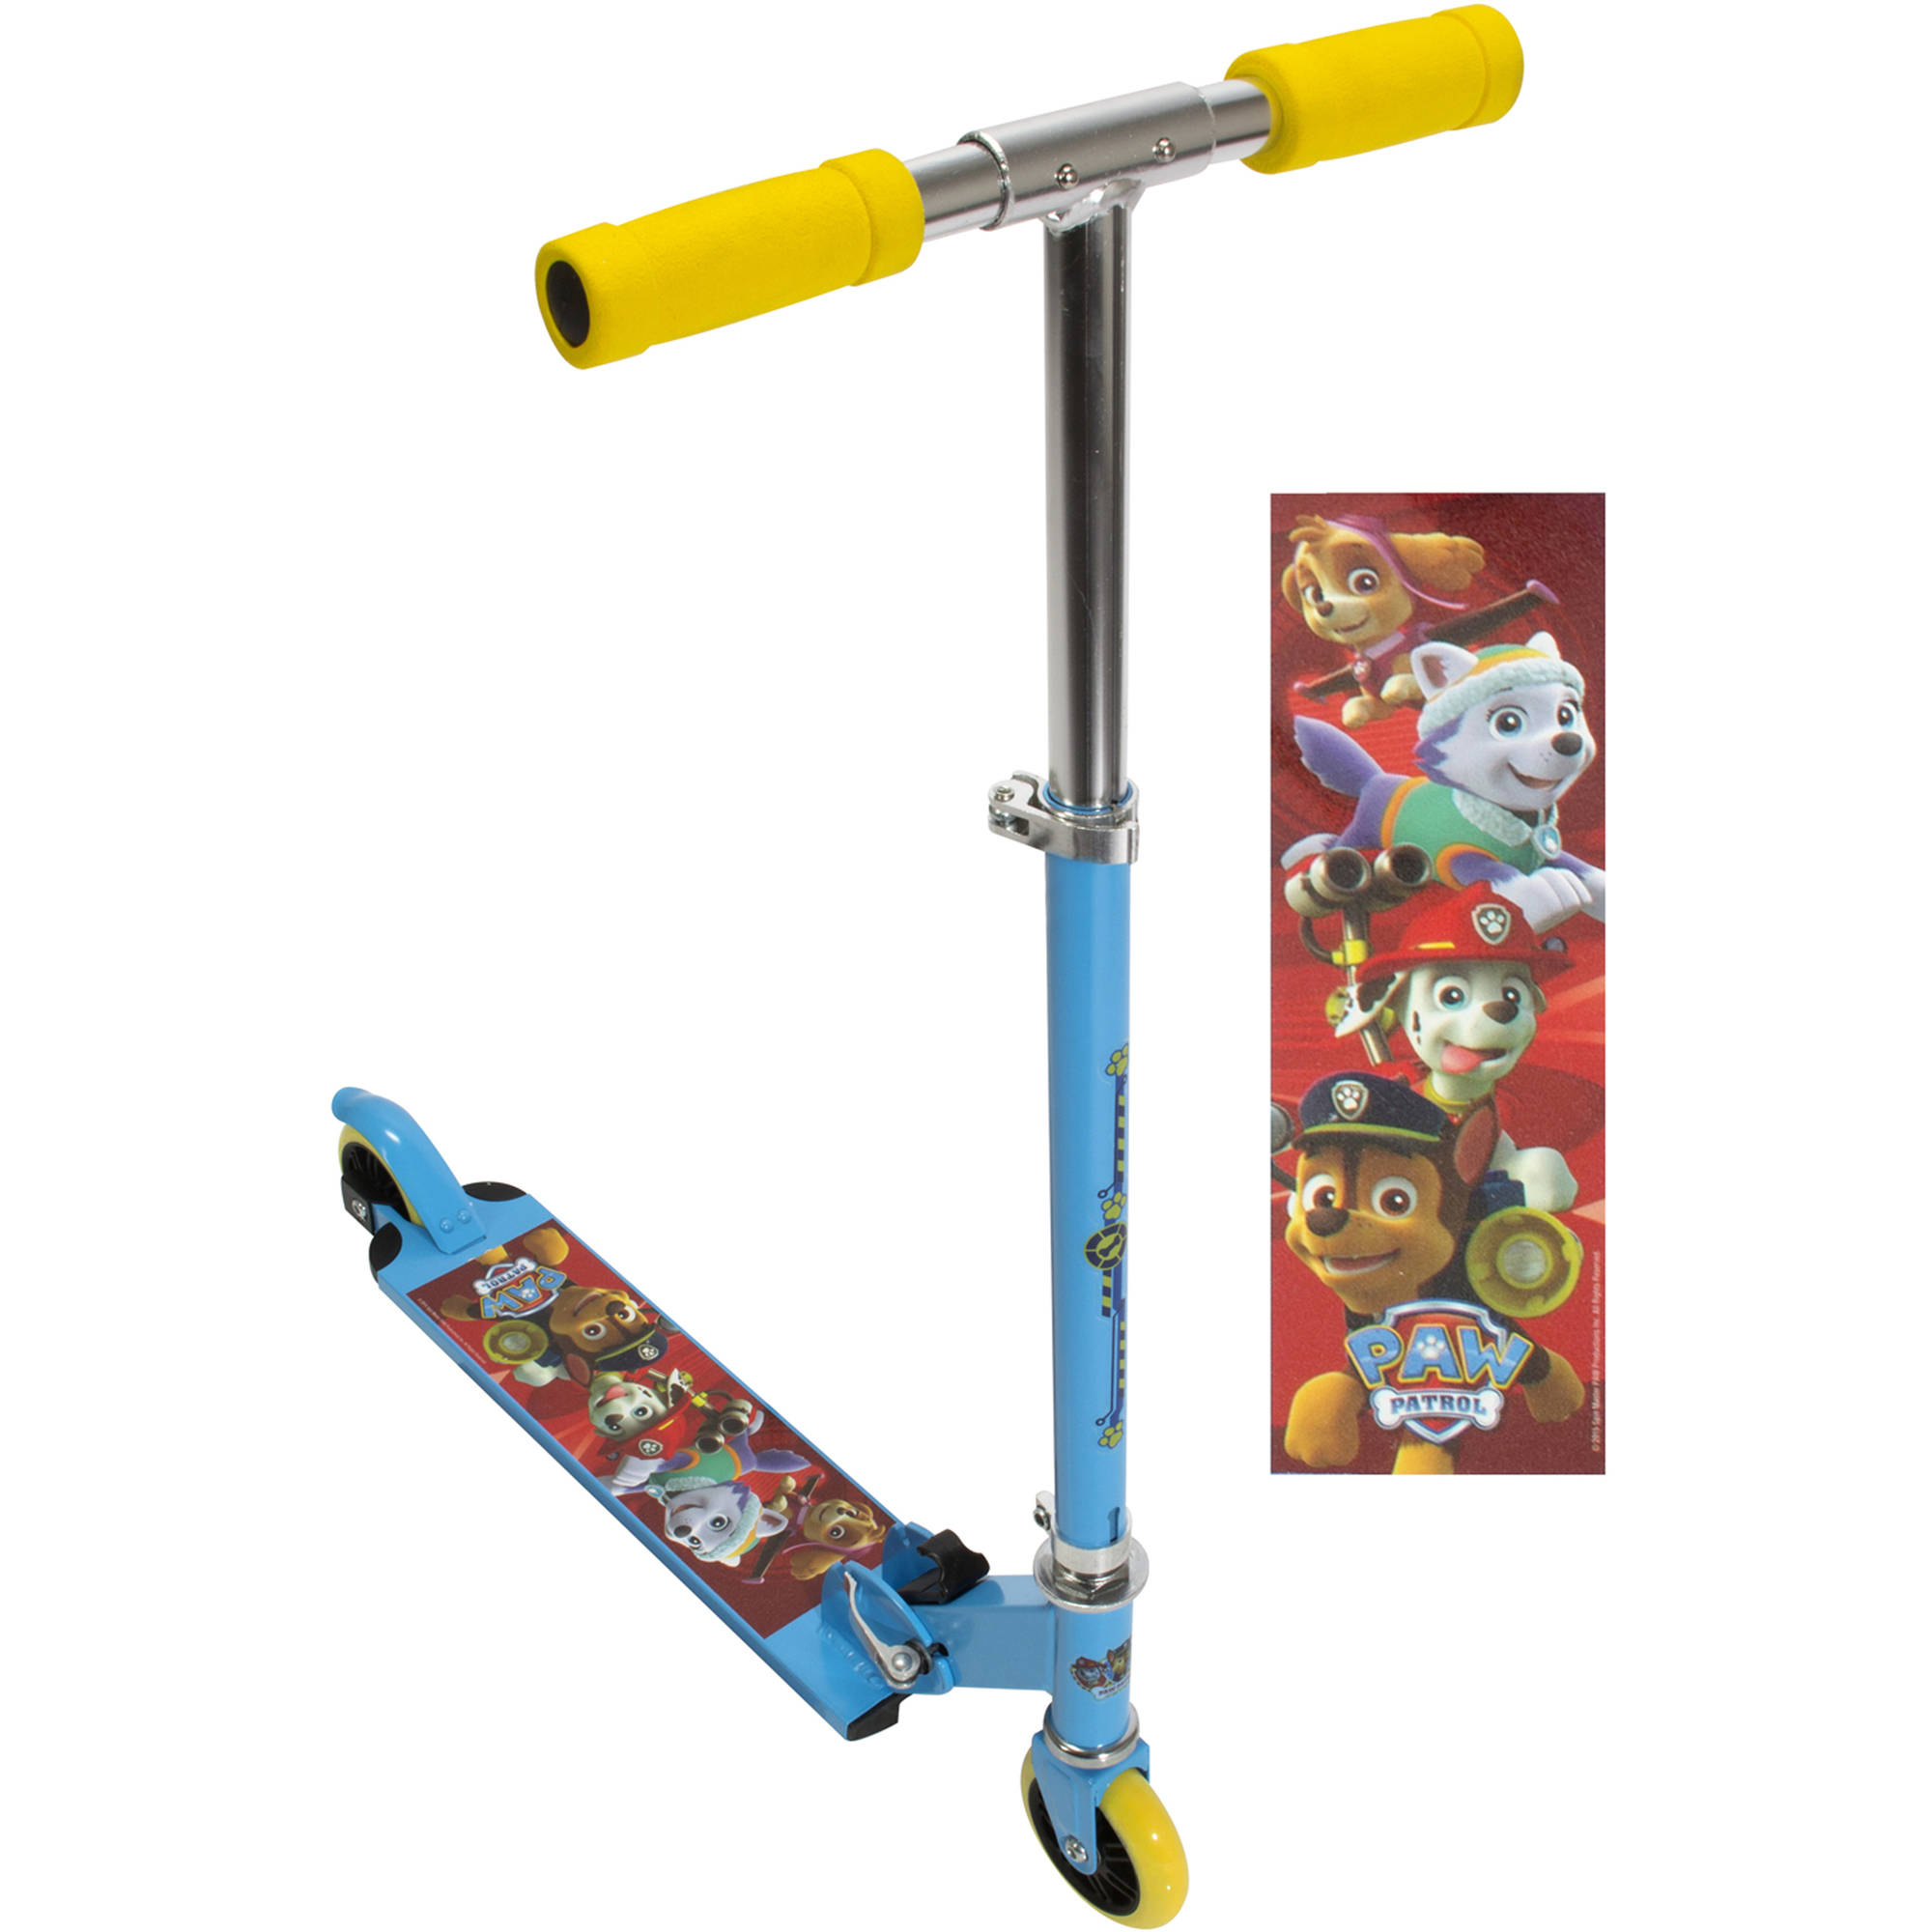 Paw Patrol 2-Wheel Folding Kick Scooter Only at Walmart by Bravo Sports